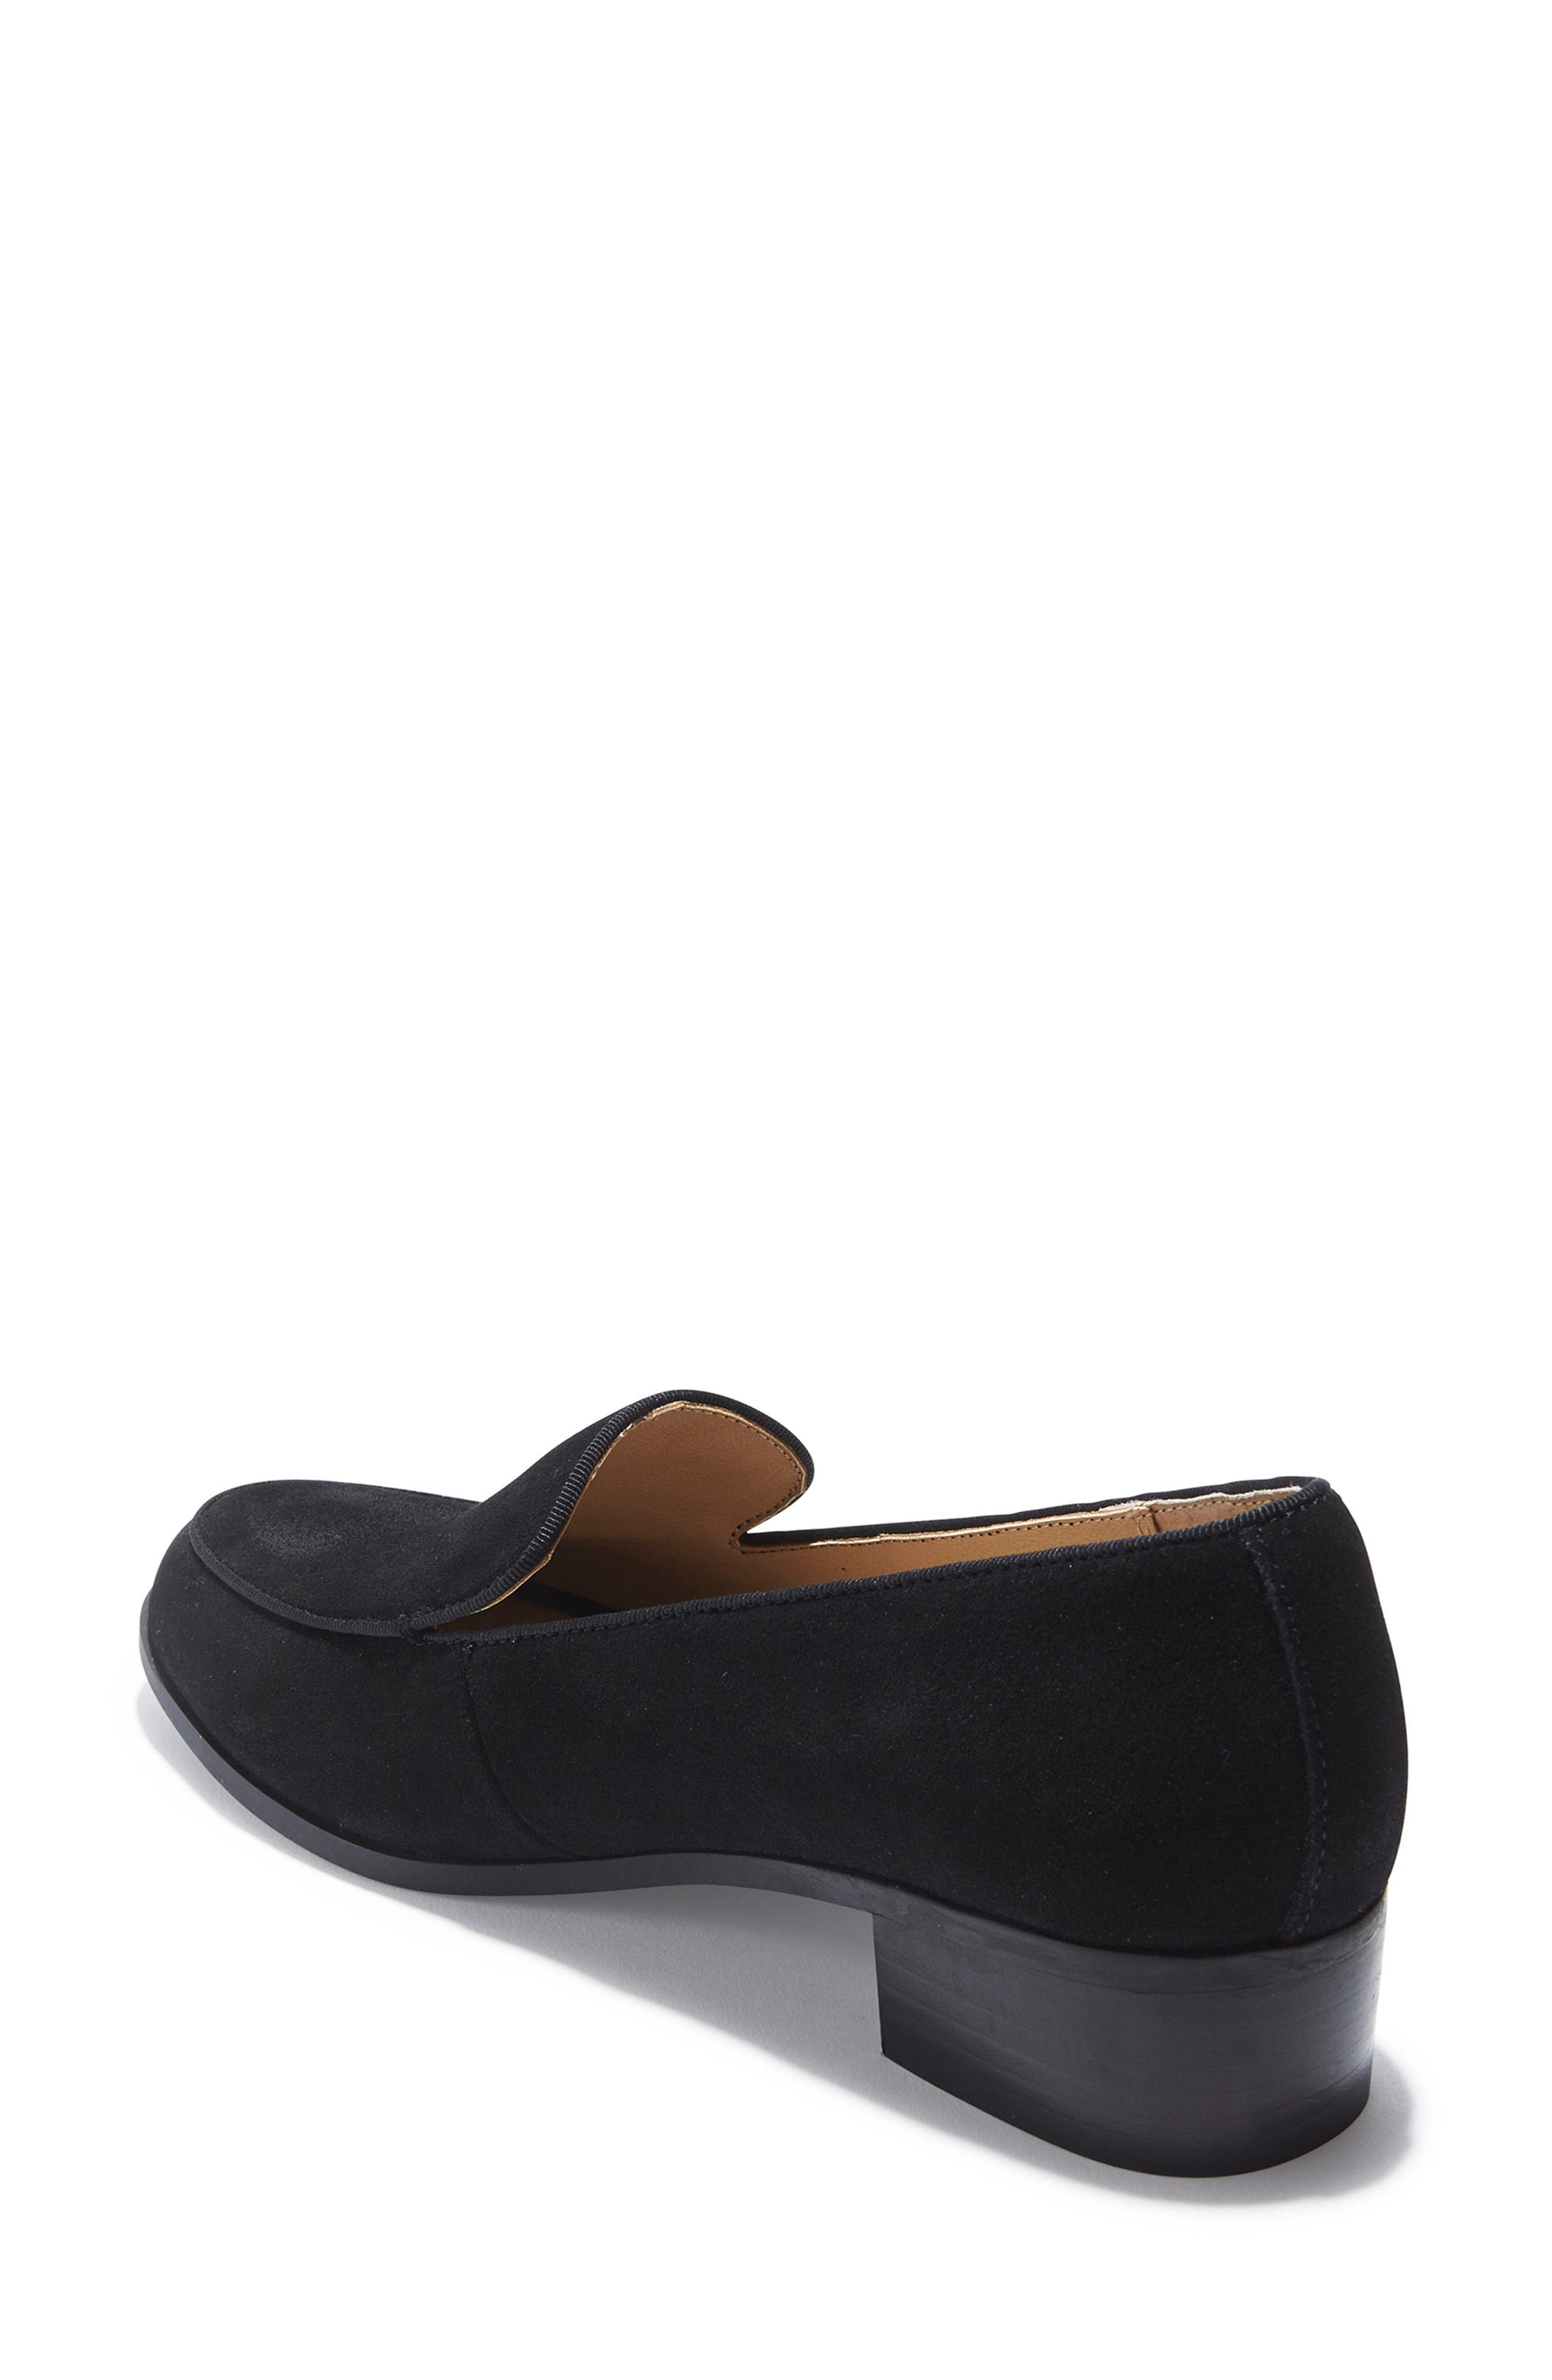 Jazzy Loafer,                             Alternate thumbnail 3, color,